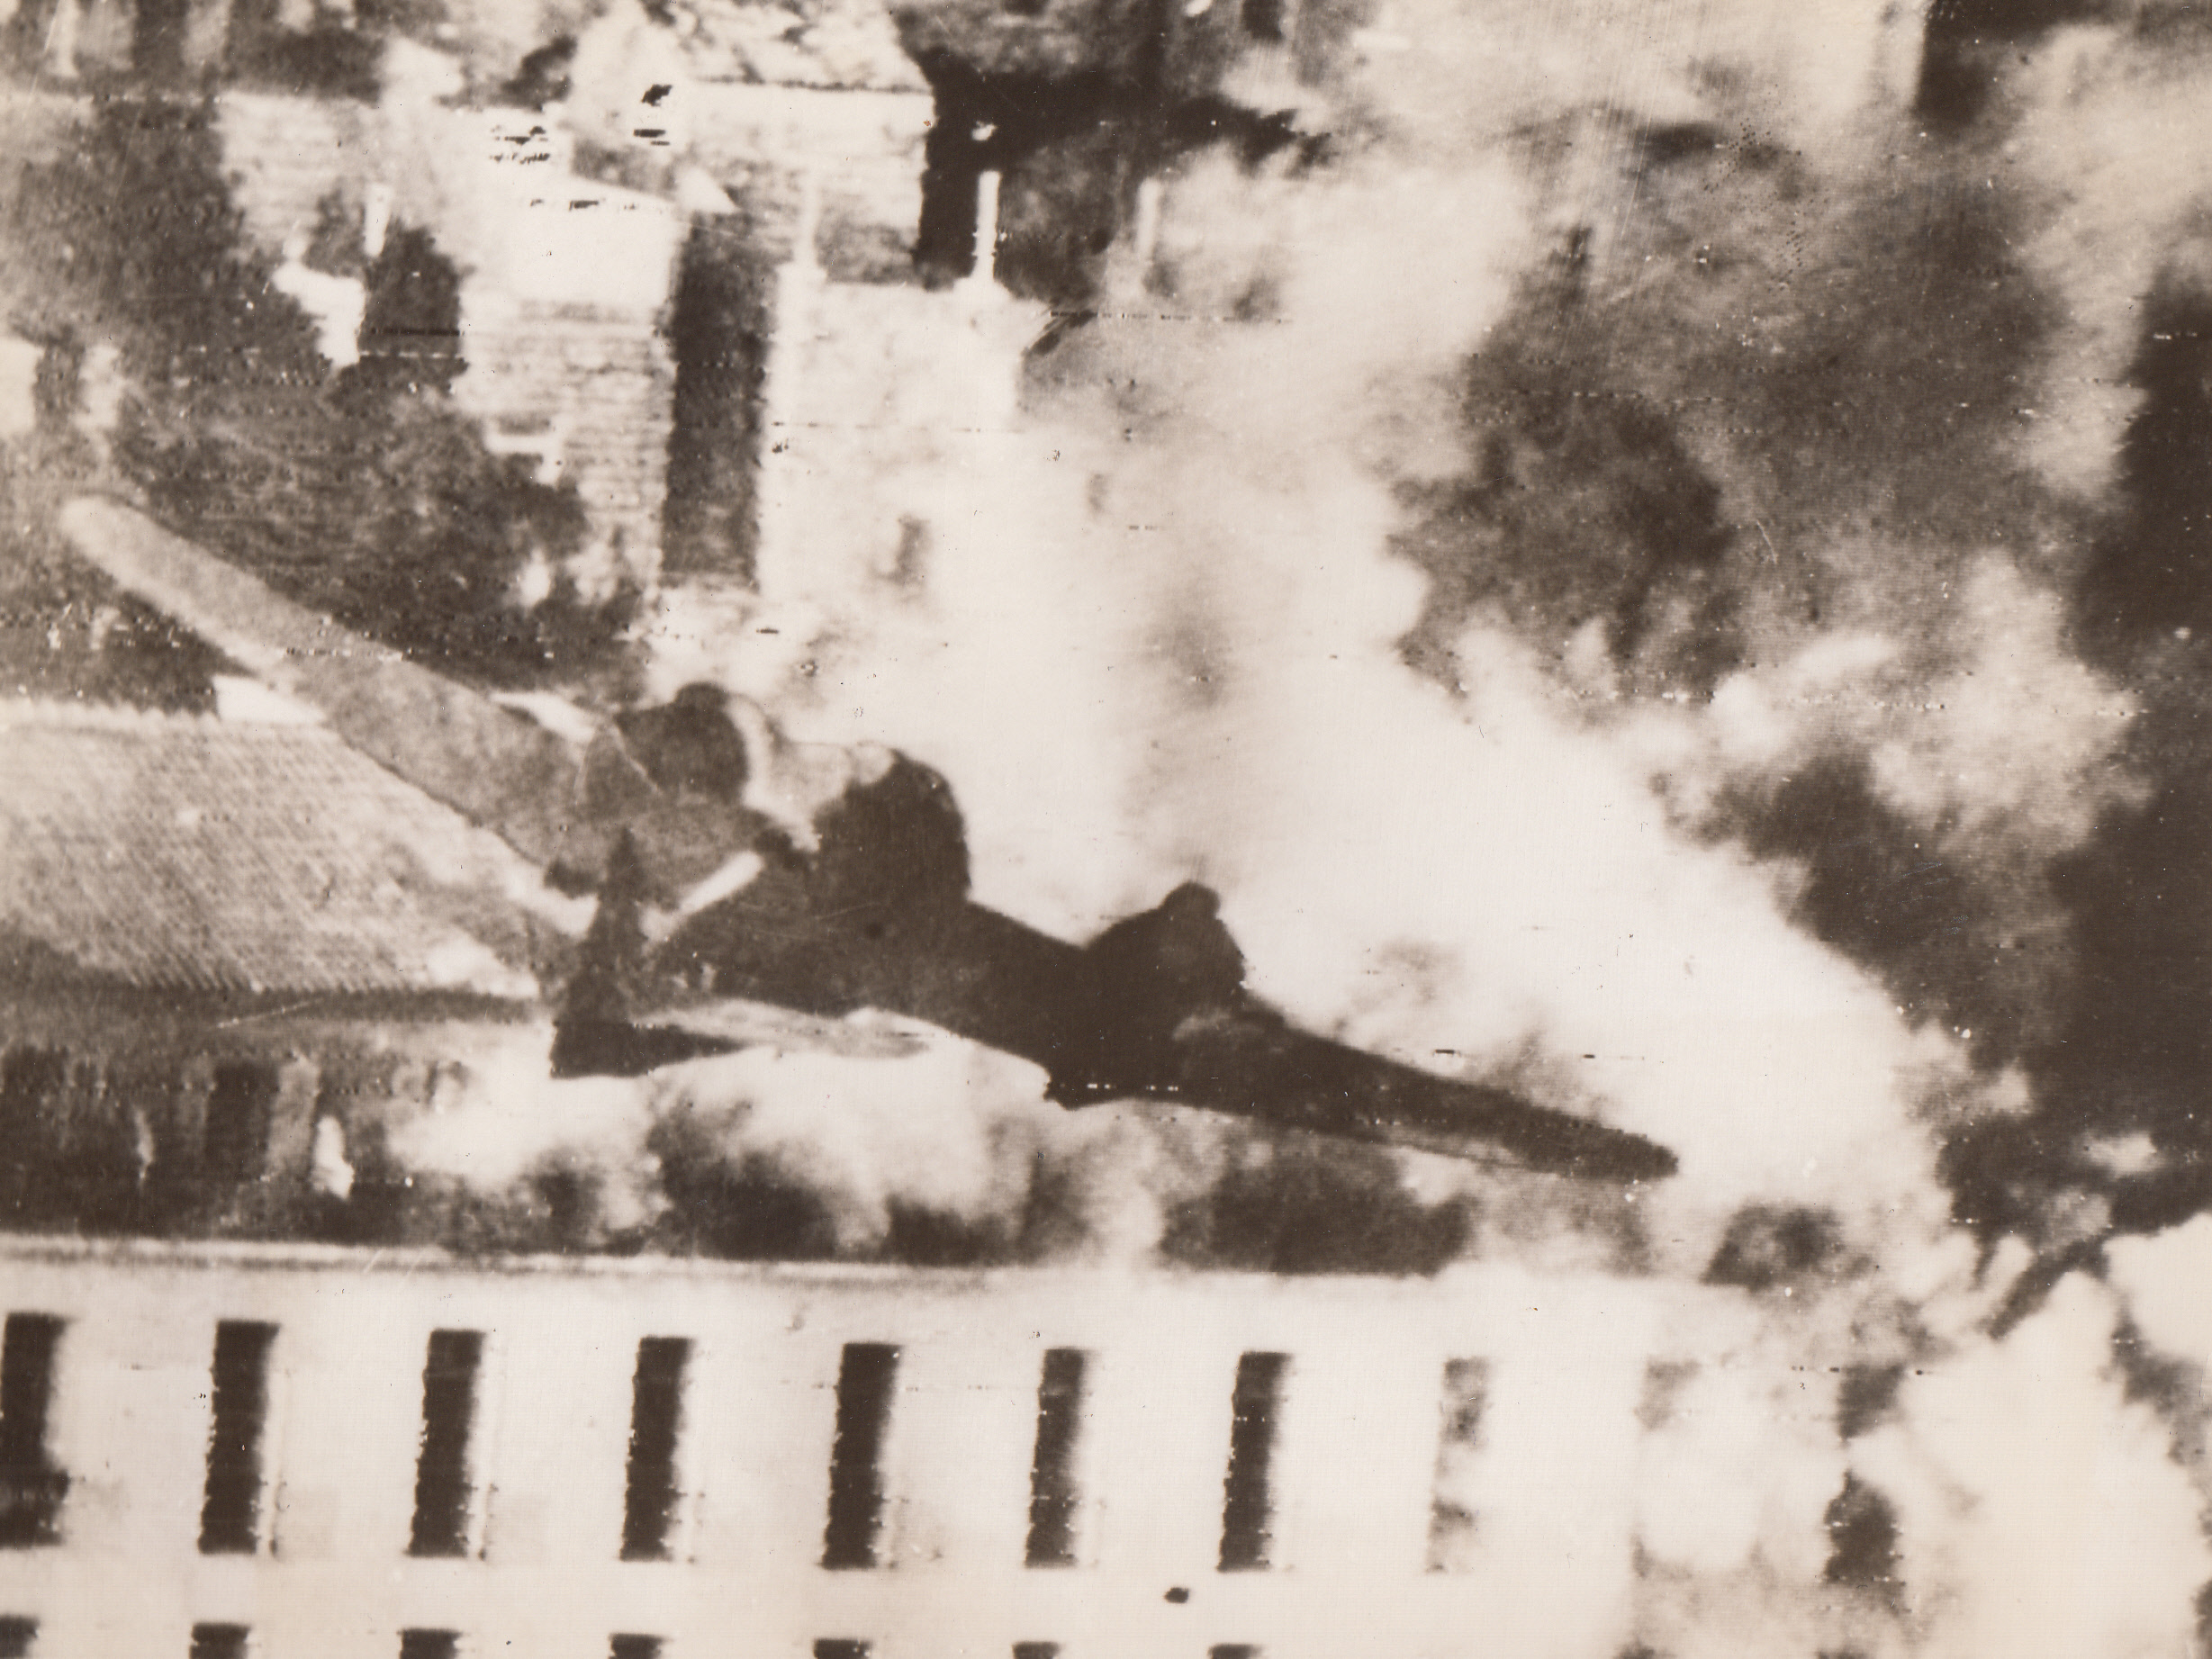 COMING IN A ROOF-TOP LEVEL, 8/22/1944. YUGOSLAVIA—A rocket-carrying Beaufighter of the Balkan Air Force goes in at roof-top level to loose its cargo of destruction on the already smoking building, suspected of being German headquarters, in Dubrovnik, Yugoslavia.;